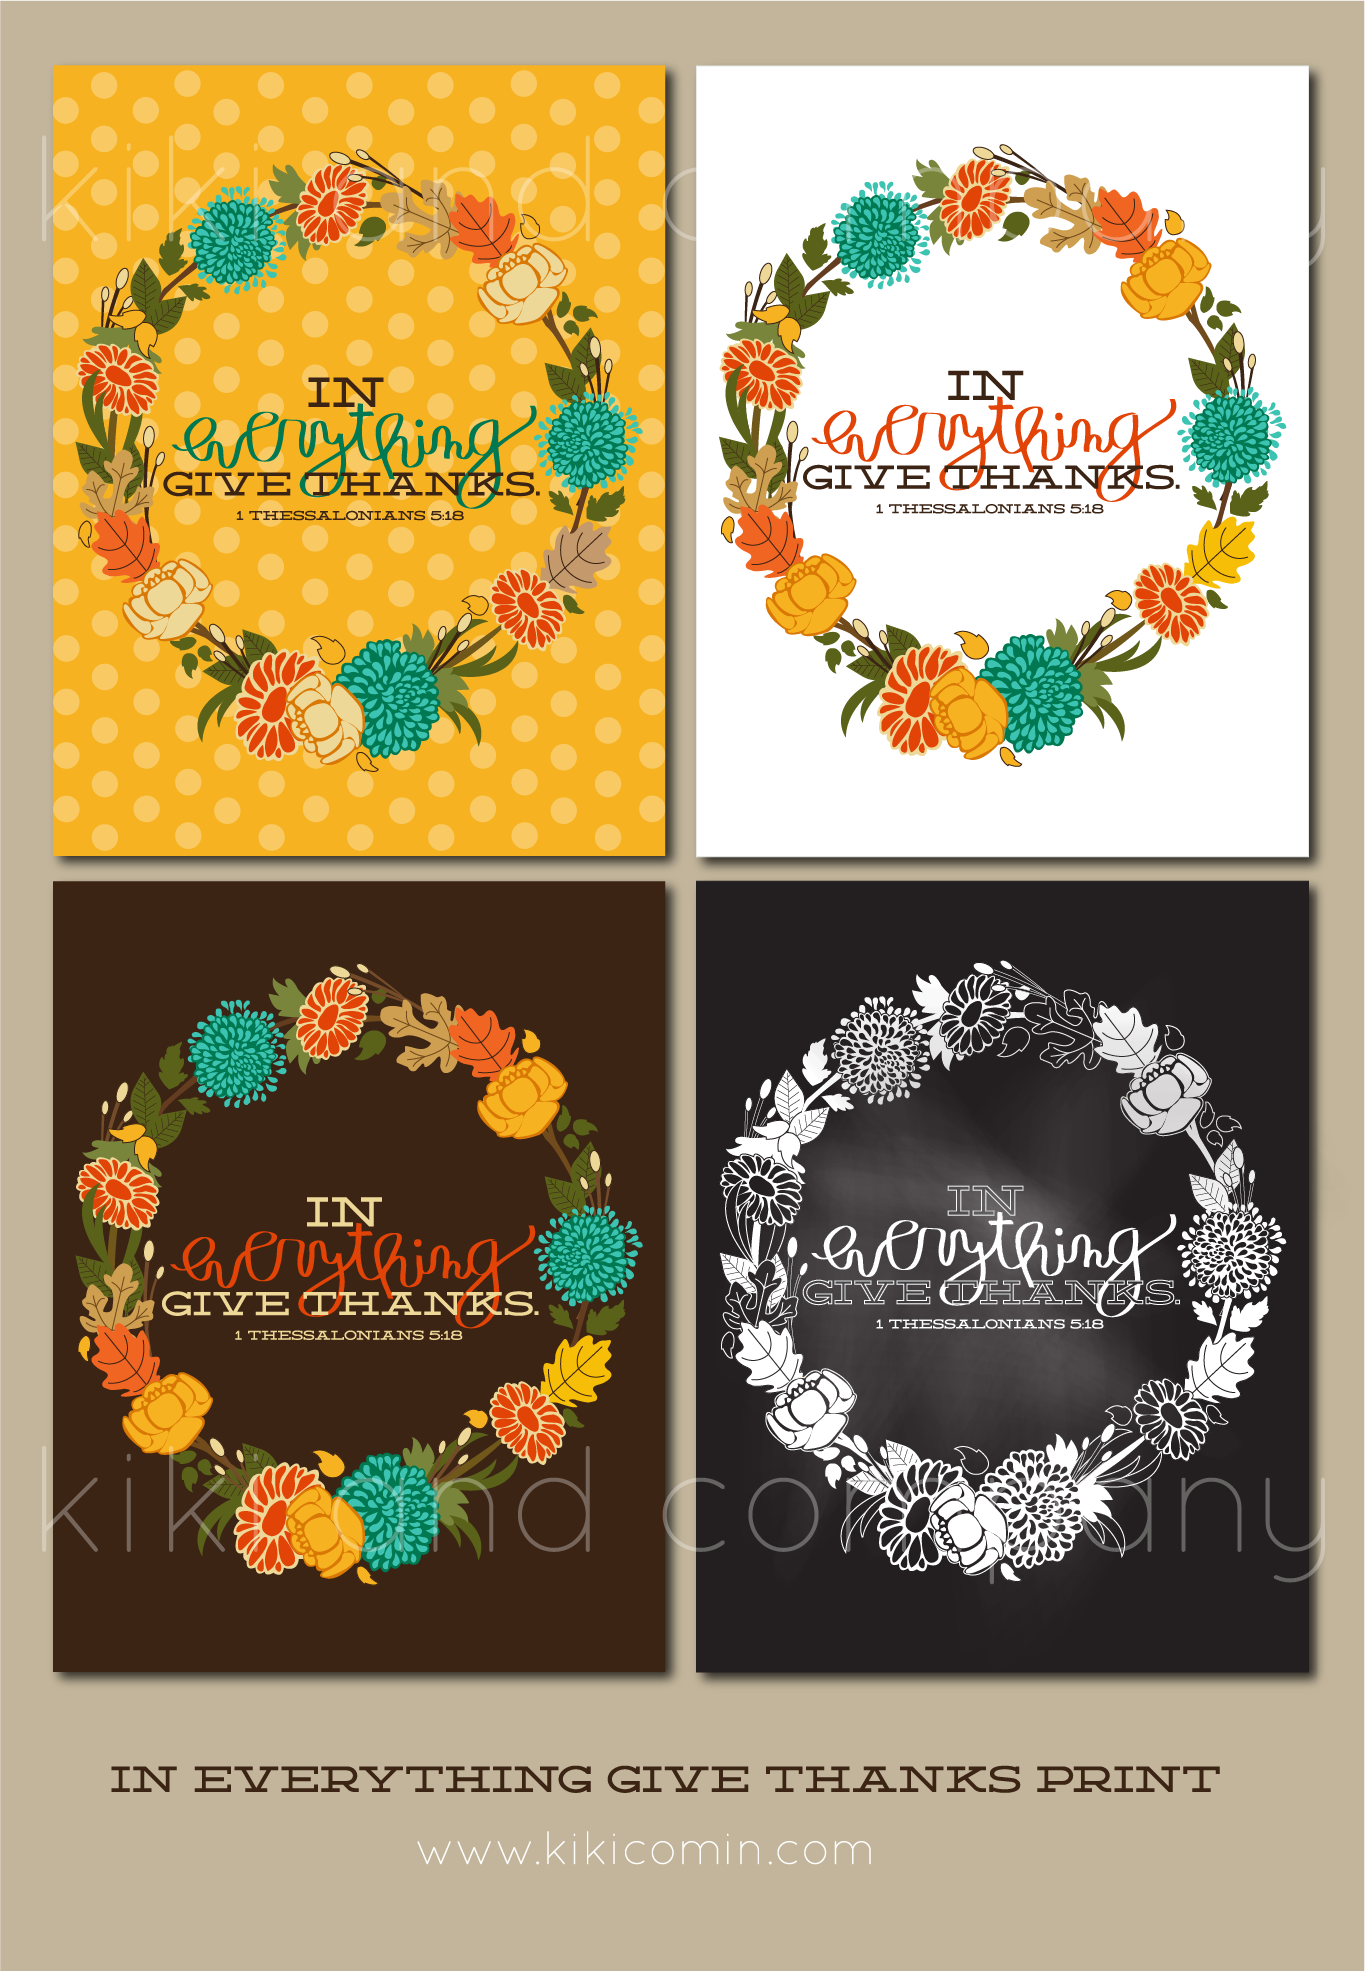 In Everything Give Thanks Thanksgiving Print Kiki Company